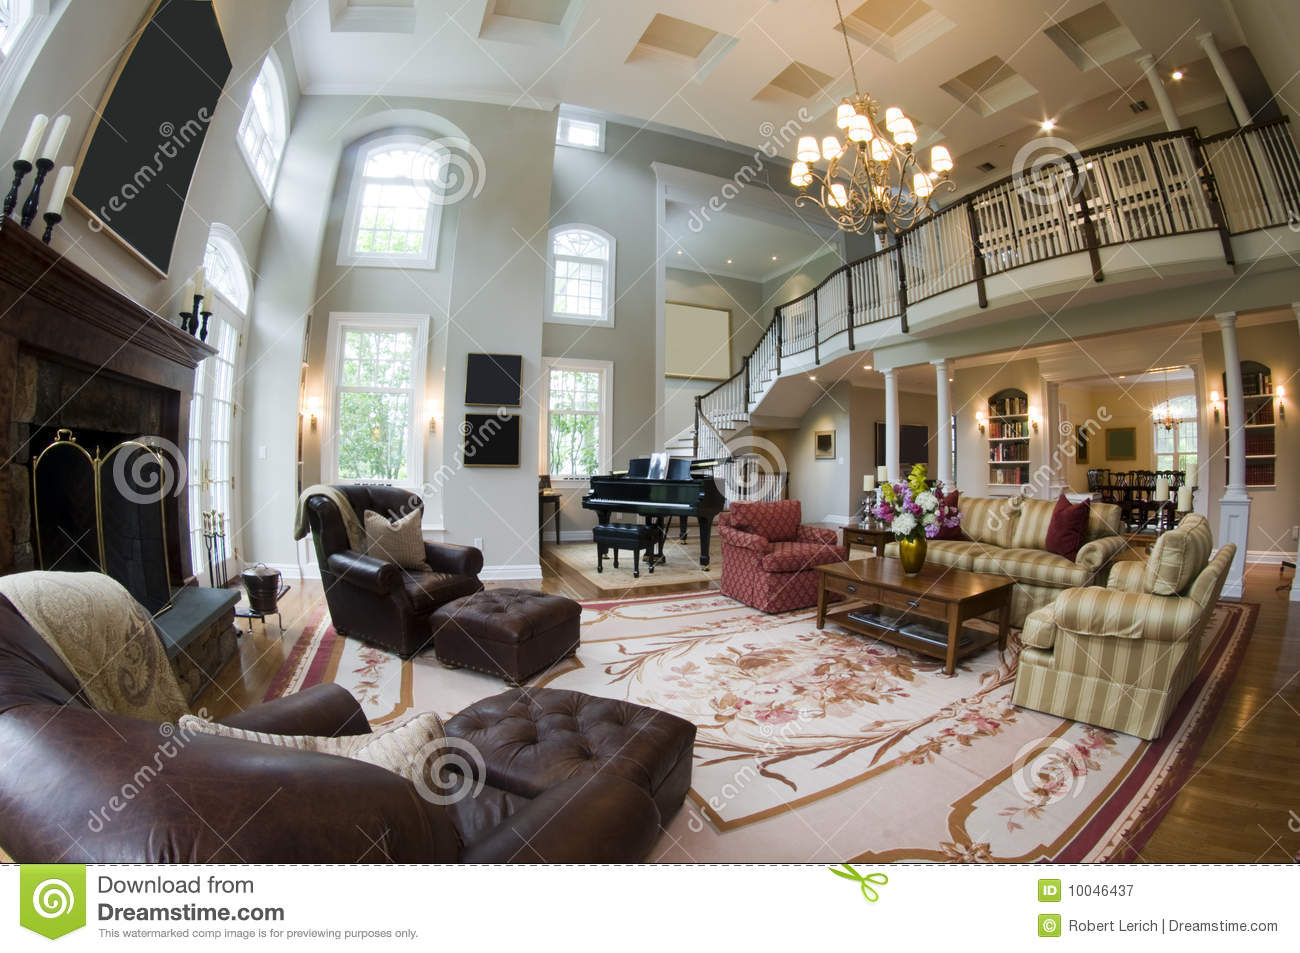 Mansion Living Room With Large Windows Stock Images - Image: 27281404